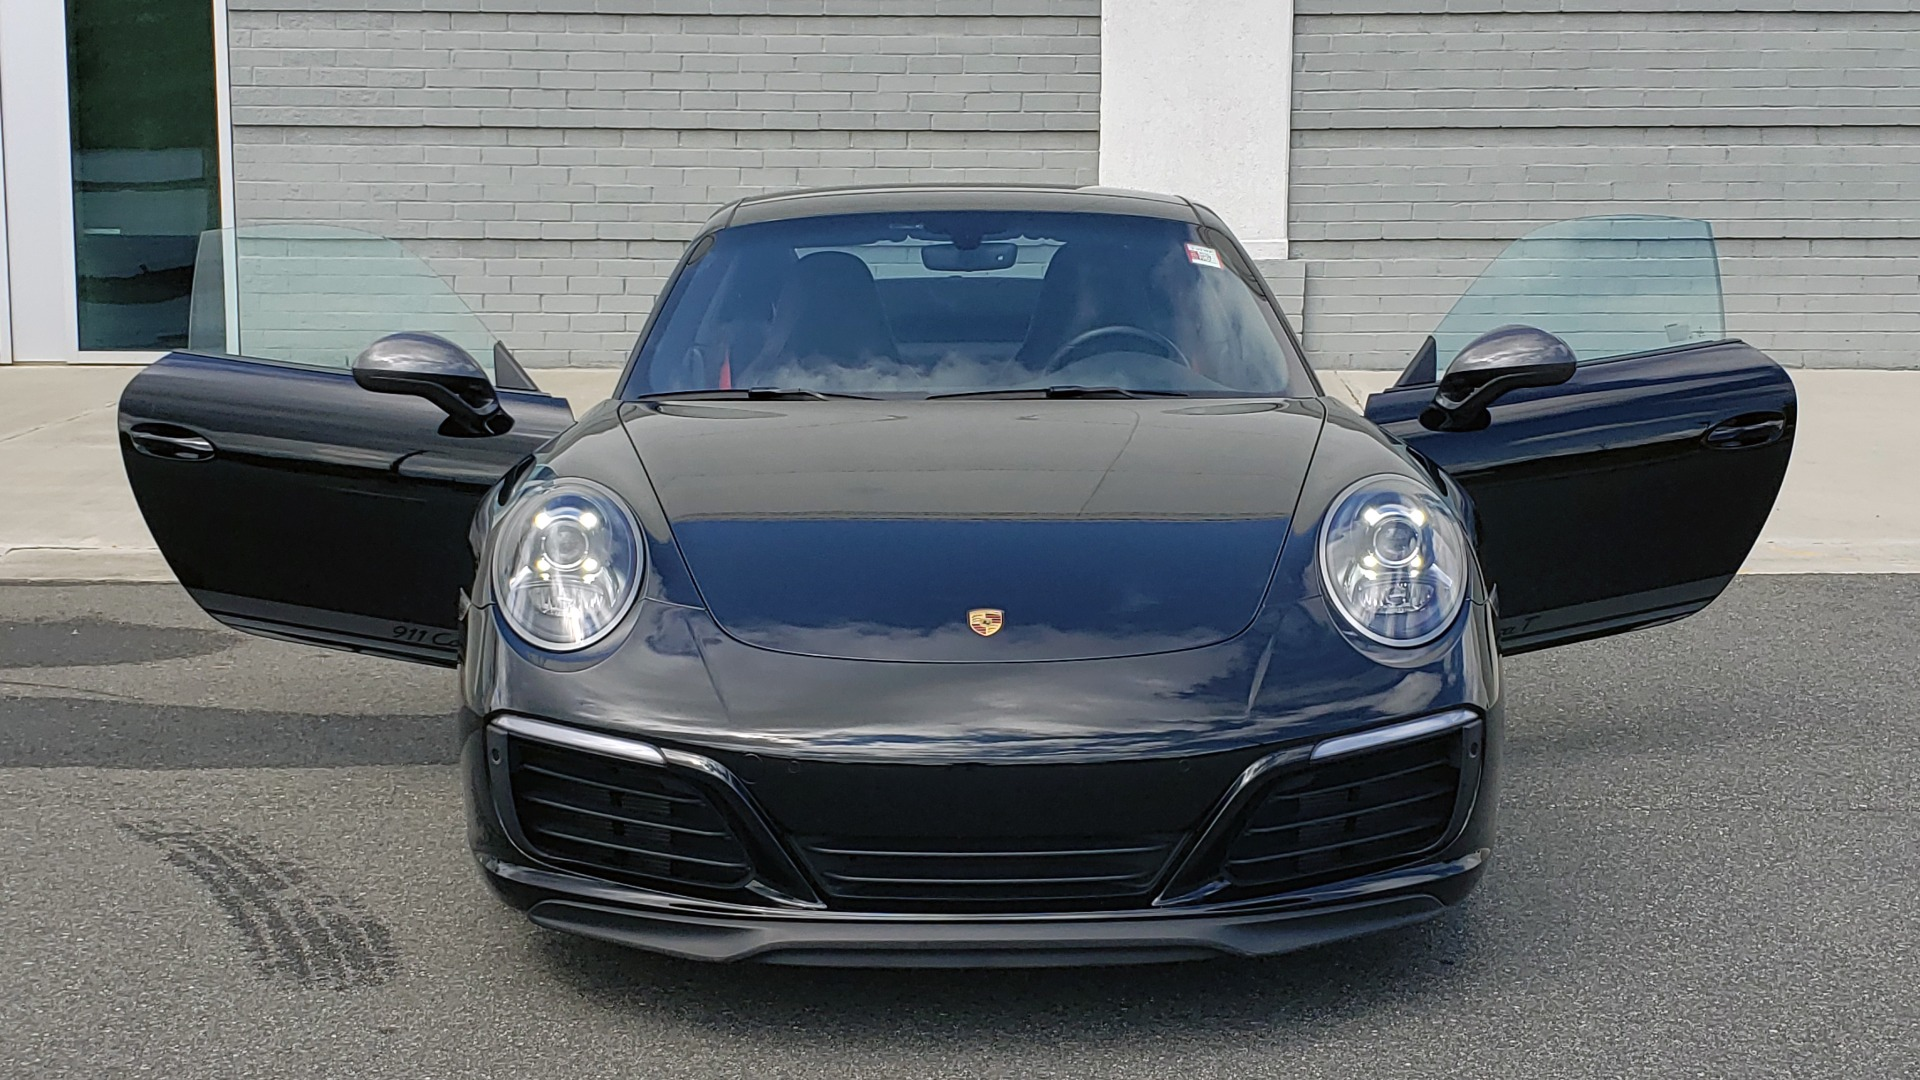 Used 2019 Porsche 911 CARRERA T / 3.0L H6 / MANUAL / PREMIUM / NAV / BOSE / SUNROOF / REARVIEW for sale $117,000 at Formula Imports in Charlotte NC 28227 66